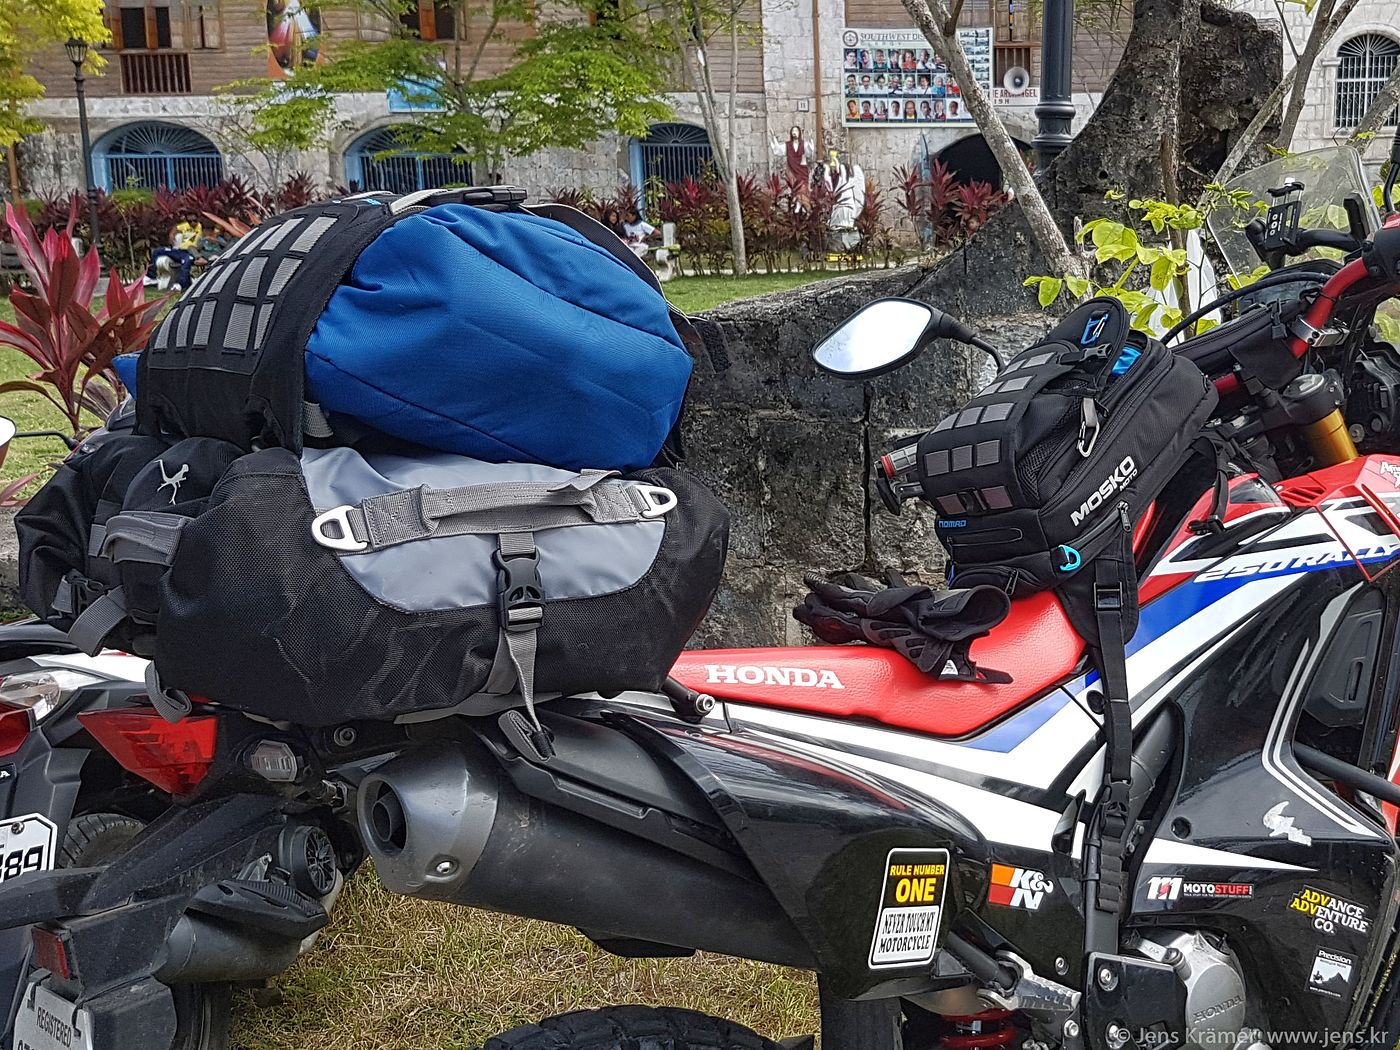 Mosko Moto Backcountry 30L and Nomad tank bag